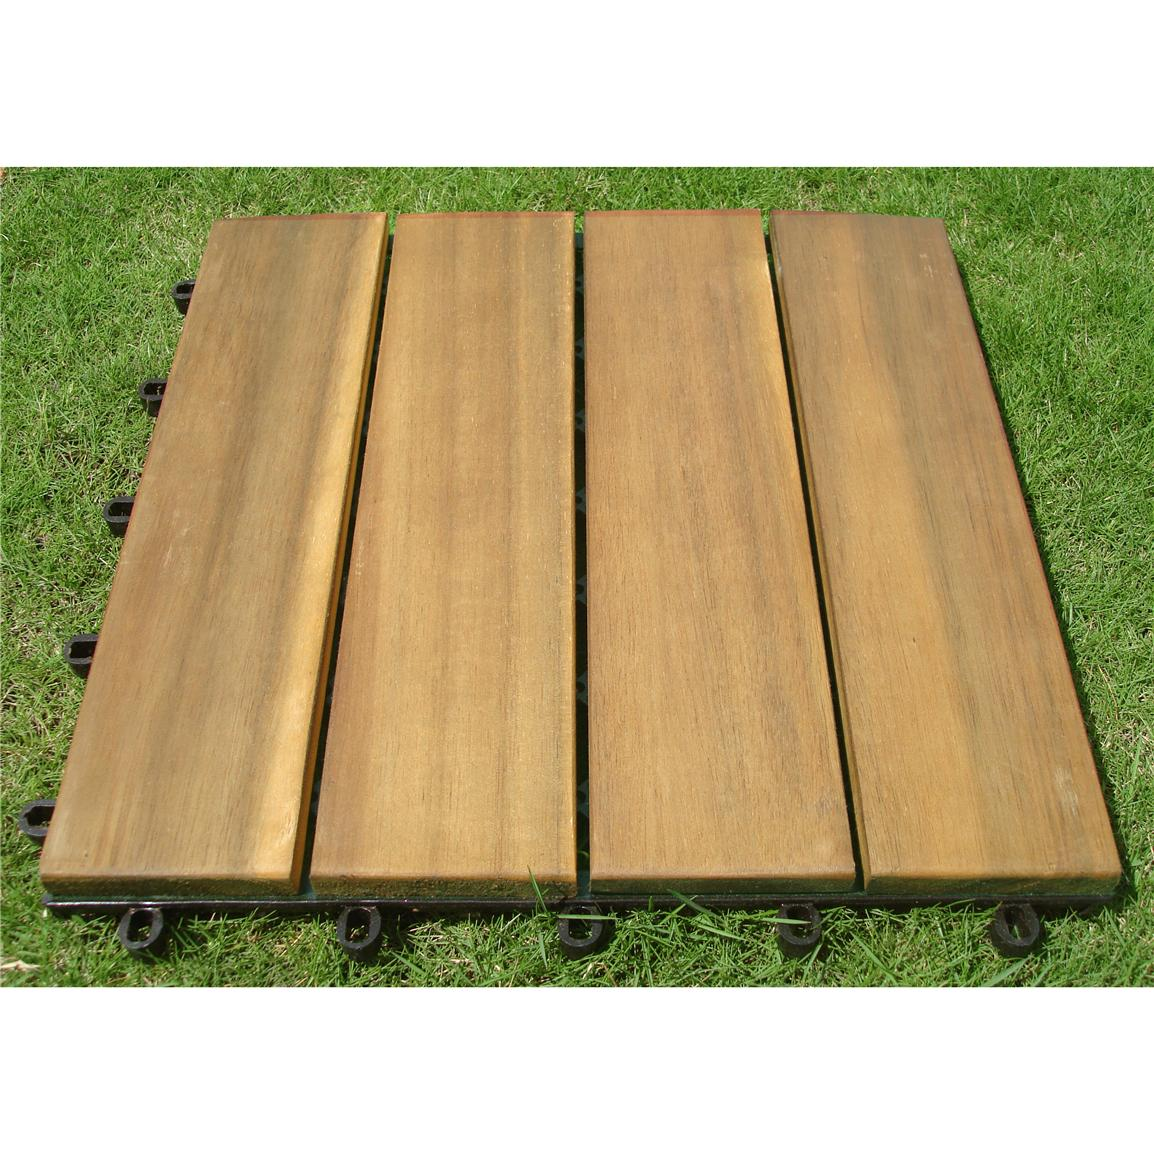 VIFAH® 4-Slat Design Plantation Teak Interlocking Wood Deck Tiles